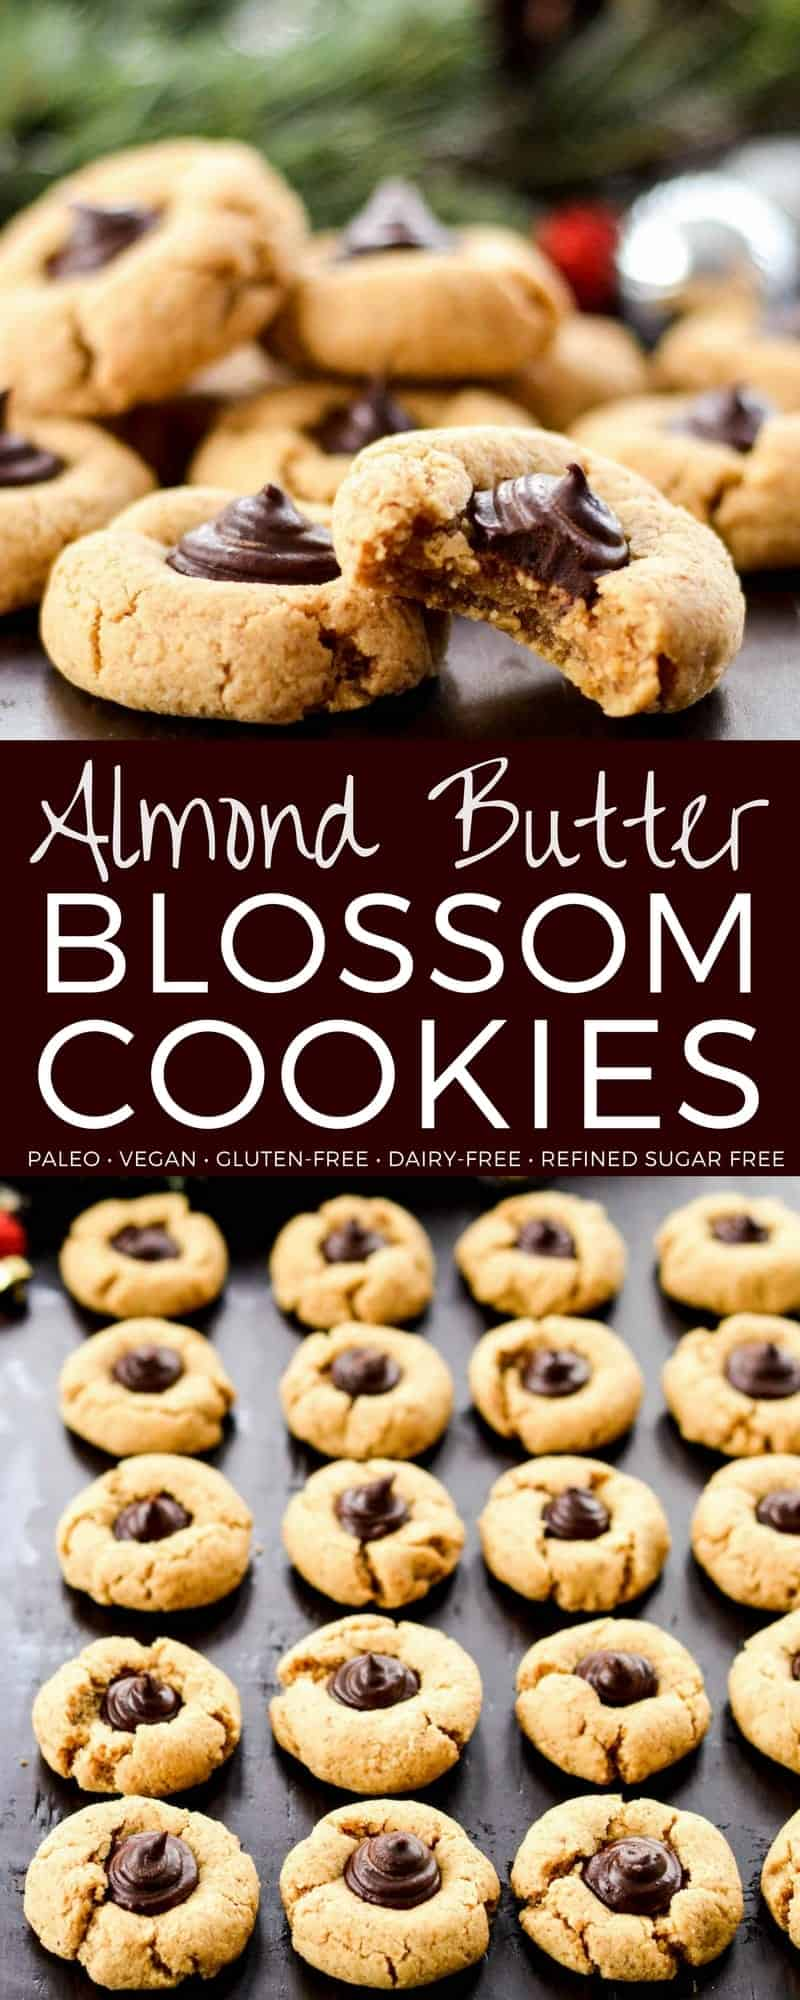 Almond Butter Blossom Cookies! These amazingly chewy, dense yet doughy cookies are easy, healthy and they're paleo, vegan, gluten-free, dairy-free and refined sugar free! #almondbutterblossoms #paleo #cookies #dairyfree #grainfree #glutenfree